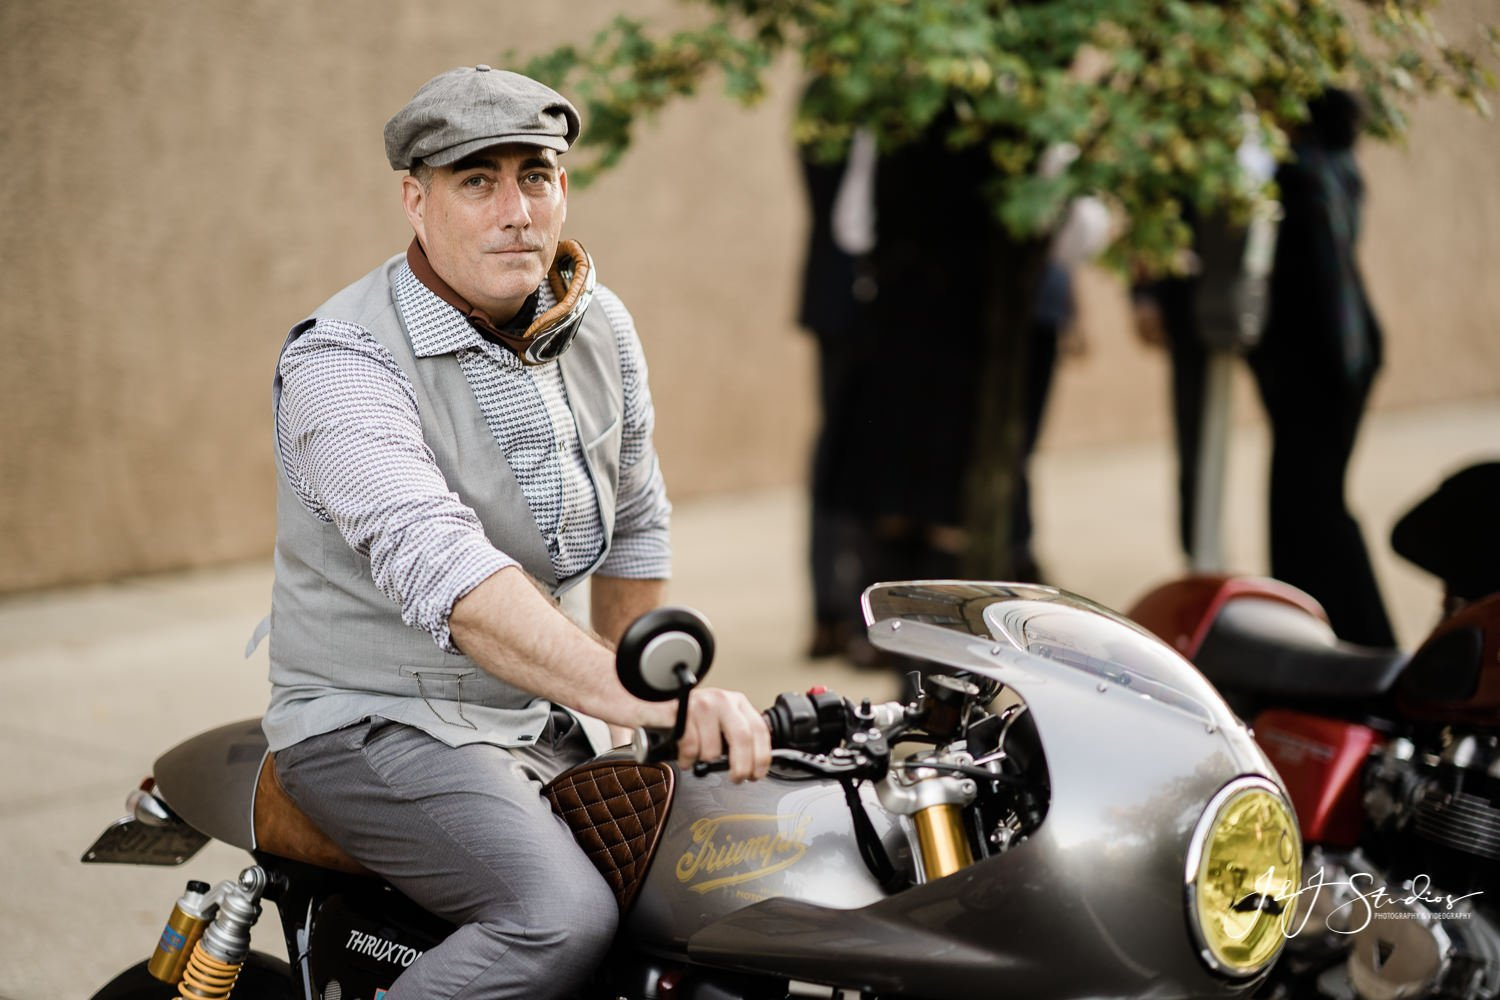 dapper man in hat on motorcycle